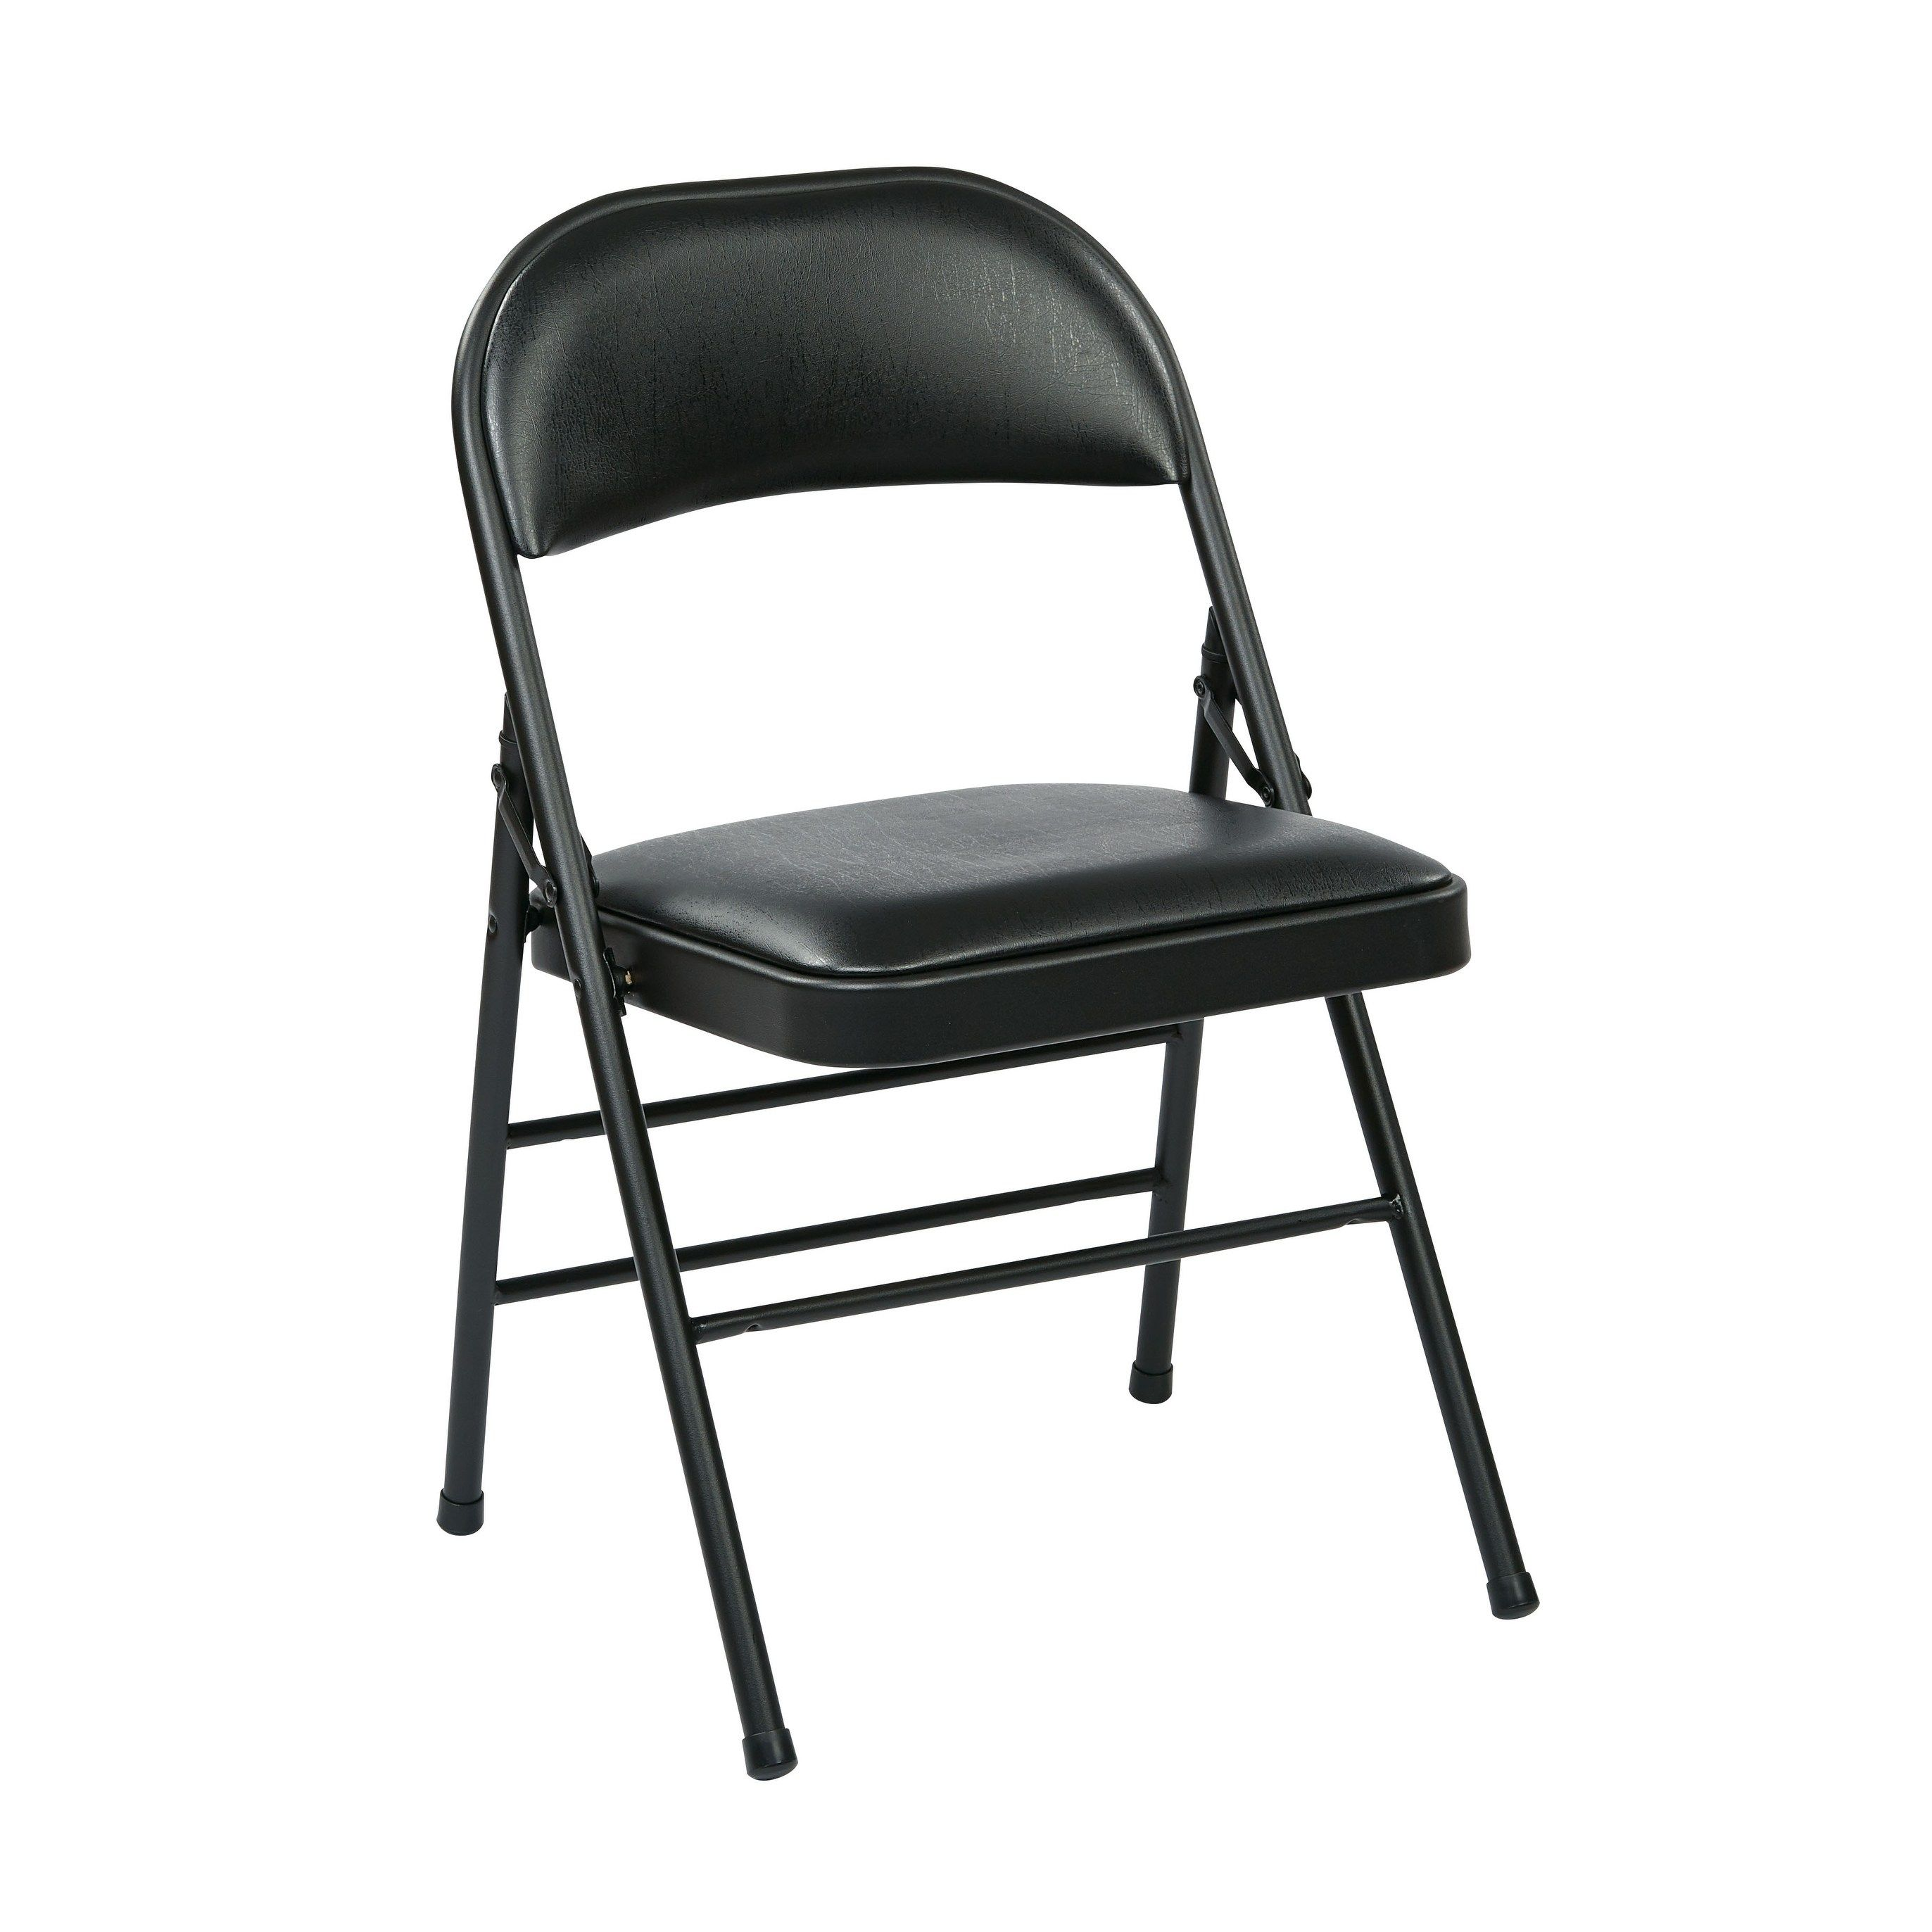 Pleasant Work Smart Folding Chair With Vinyl Seat And Back Black Pabps2019 Chair Design Images Pabps2019Com